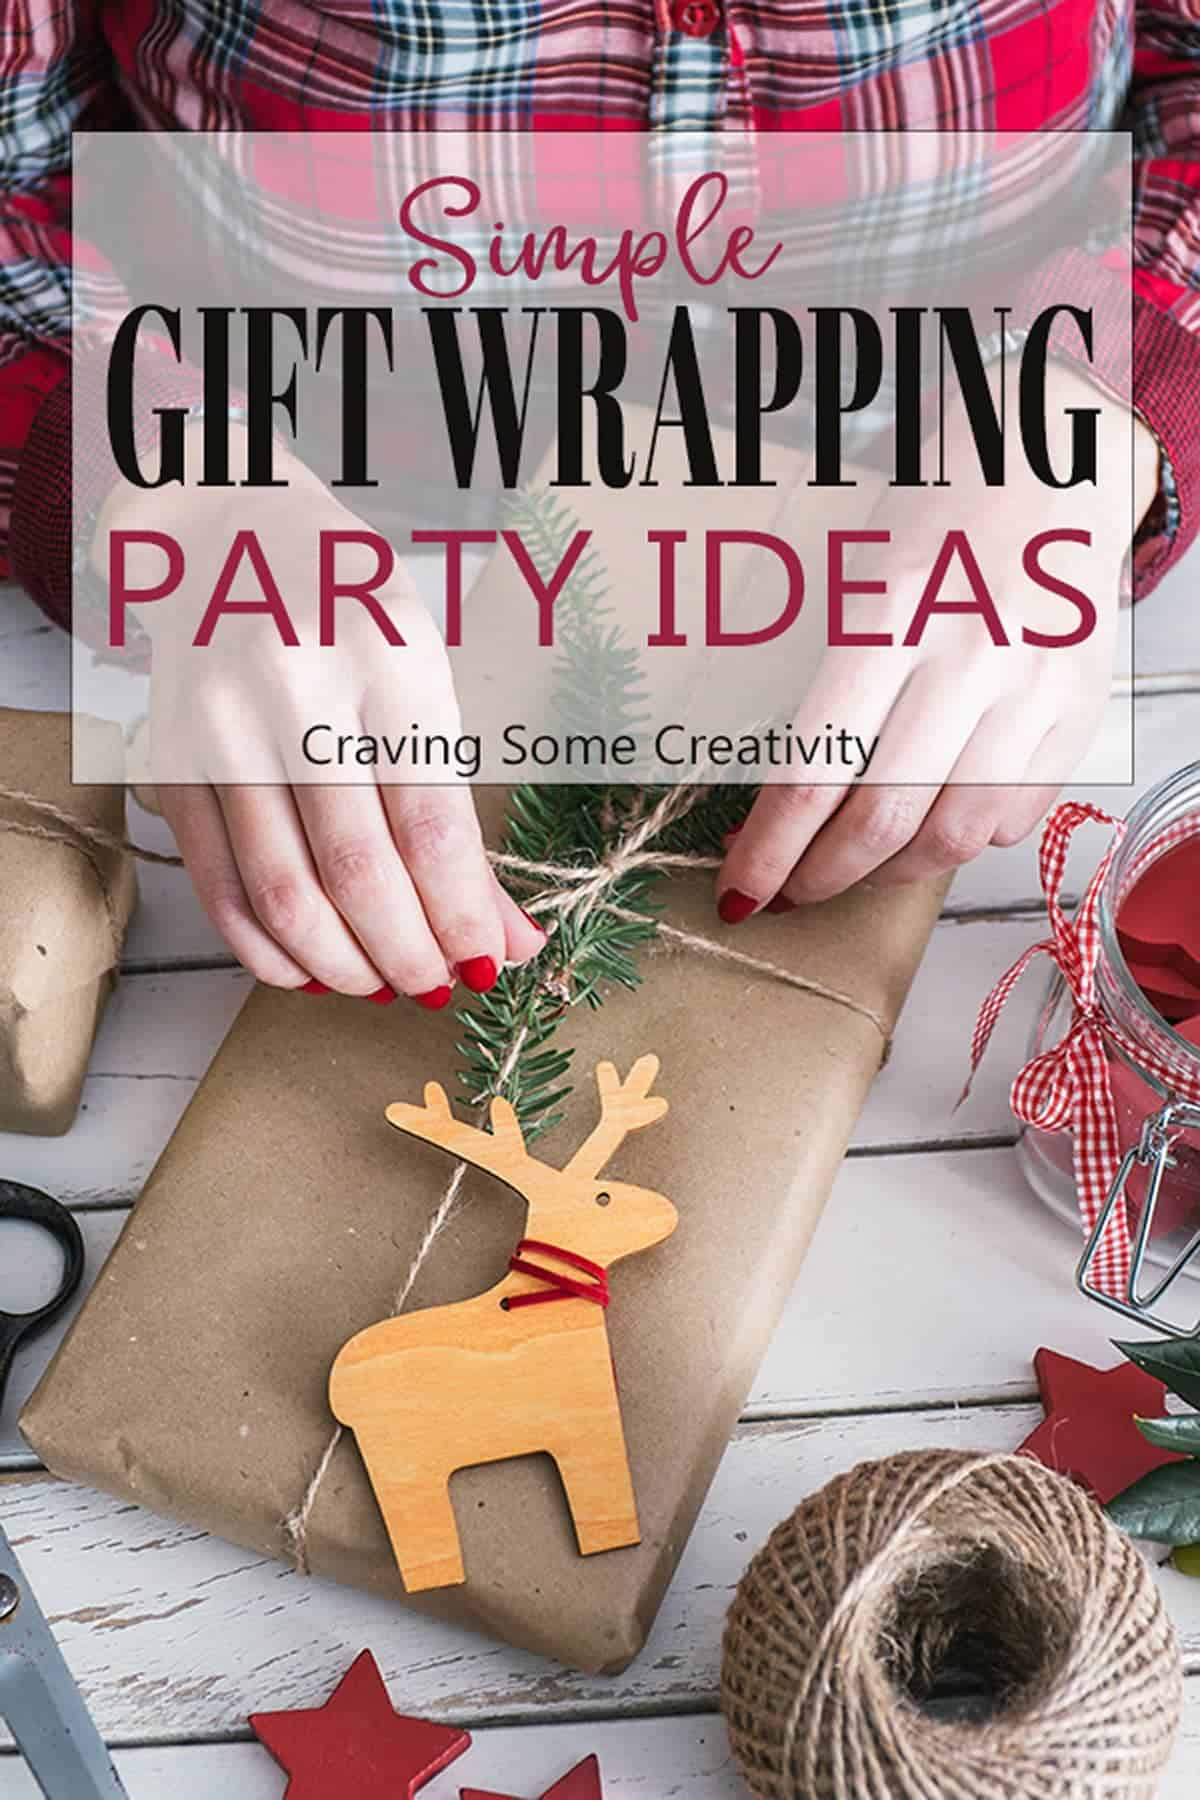 Christmas Gift Wrap Party Ideas